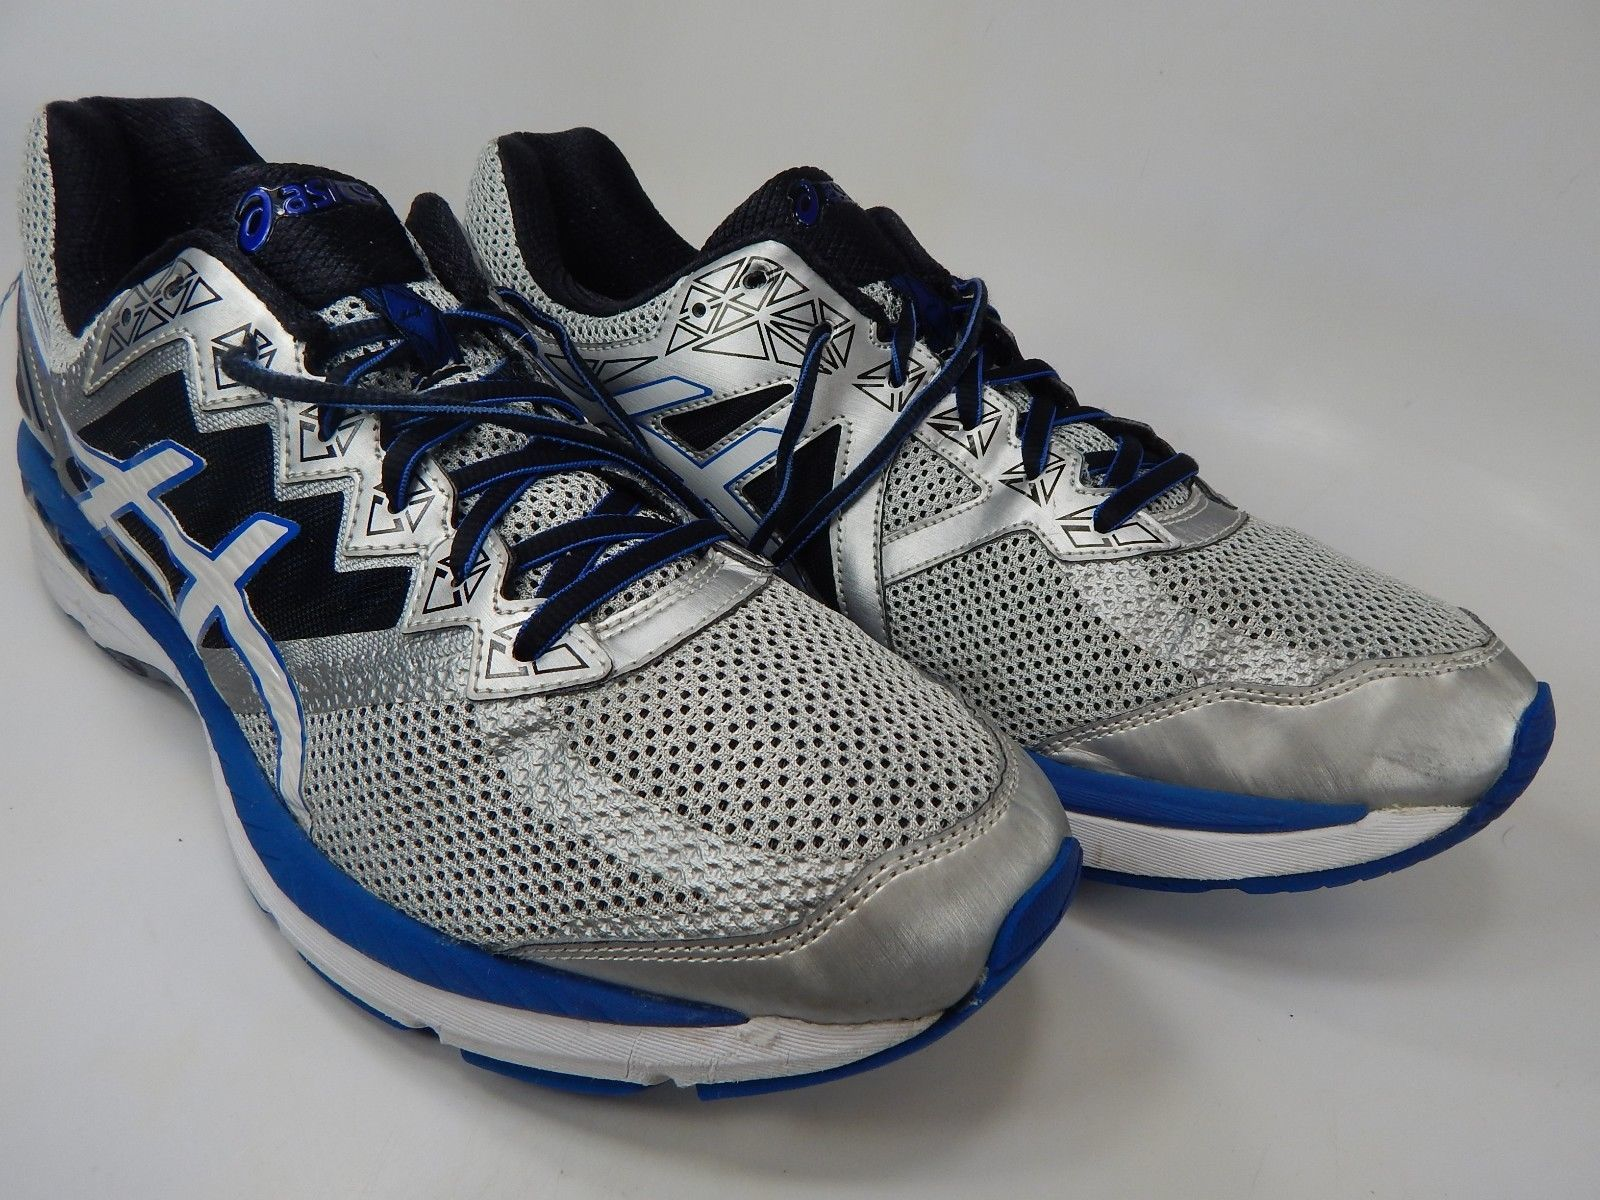 Asics GT 2000 v 4 Size US 13 M (D) EU 48 Men's Running Shoes Blue Silver T606N